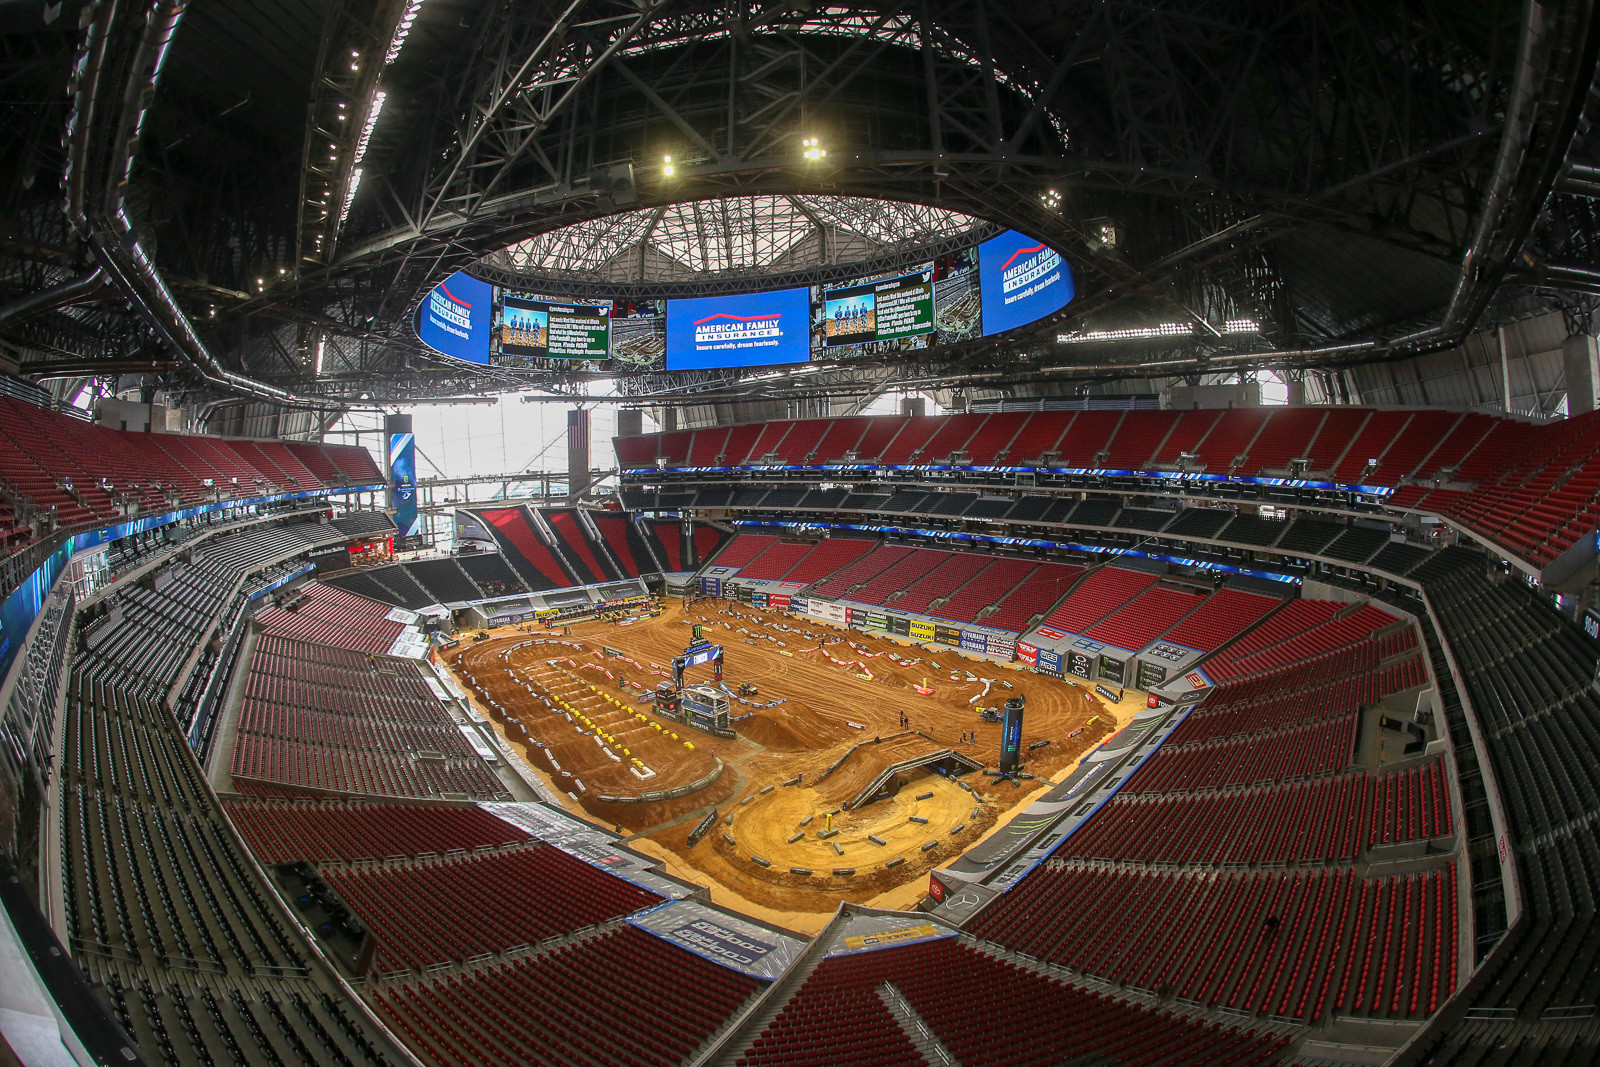 The Mercedes Benz Stadium in Atlanta is pretty amazing.